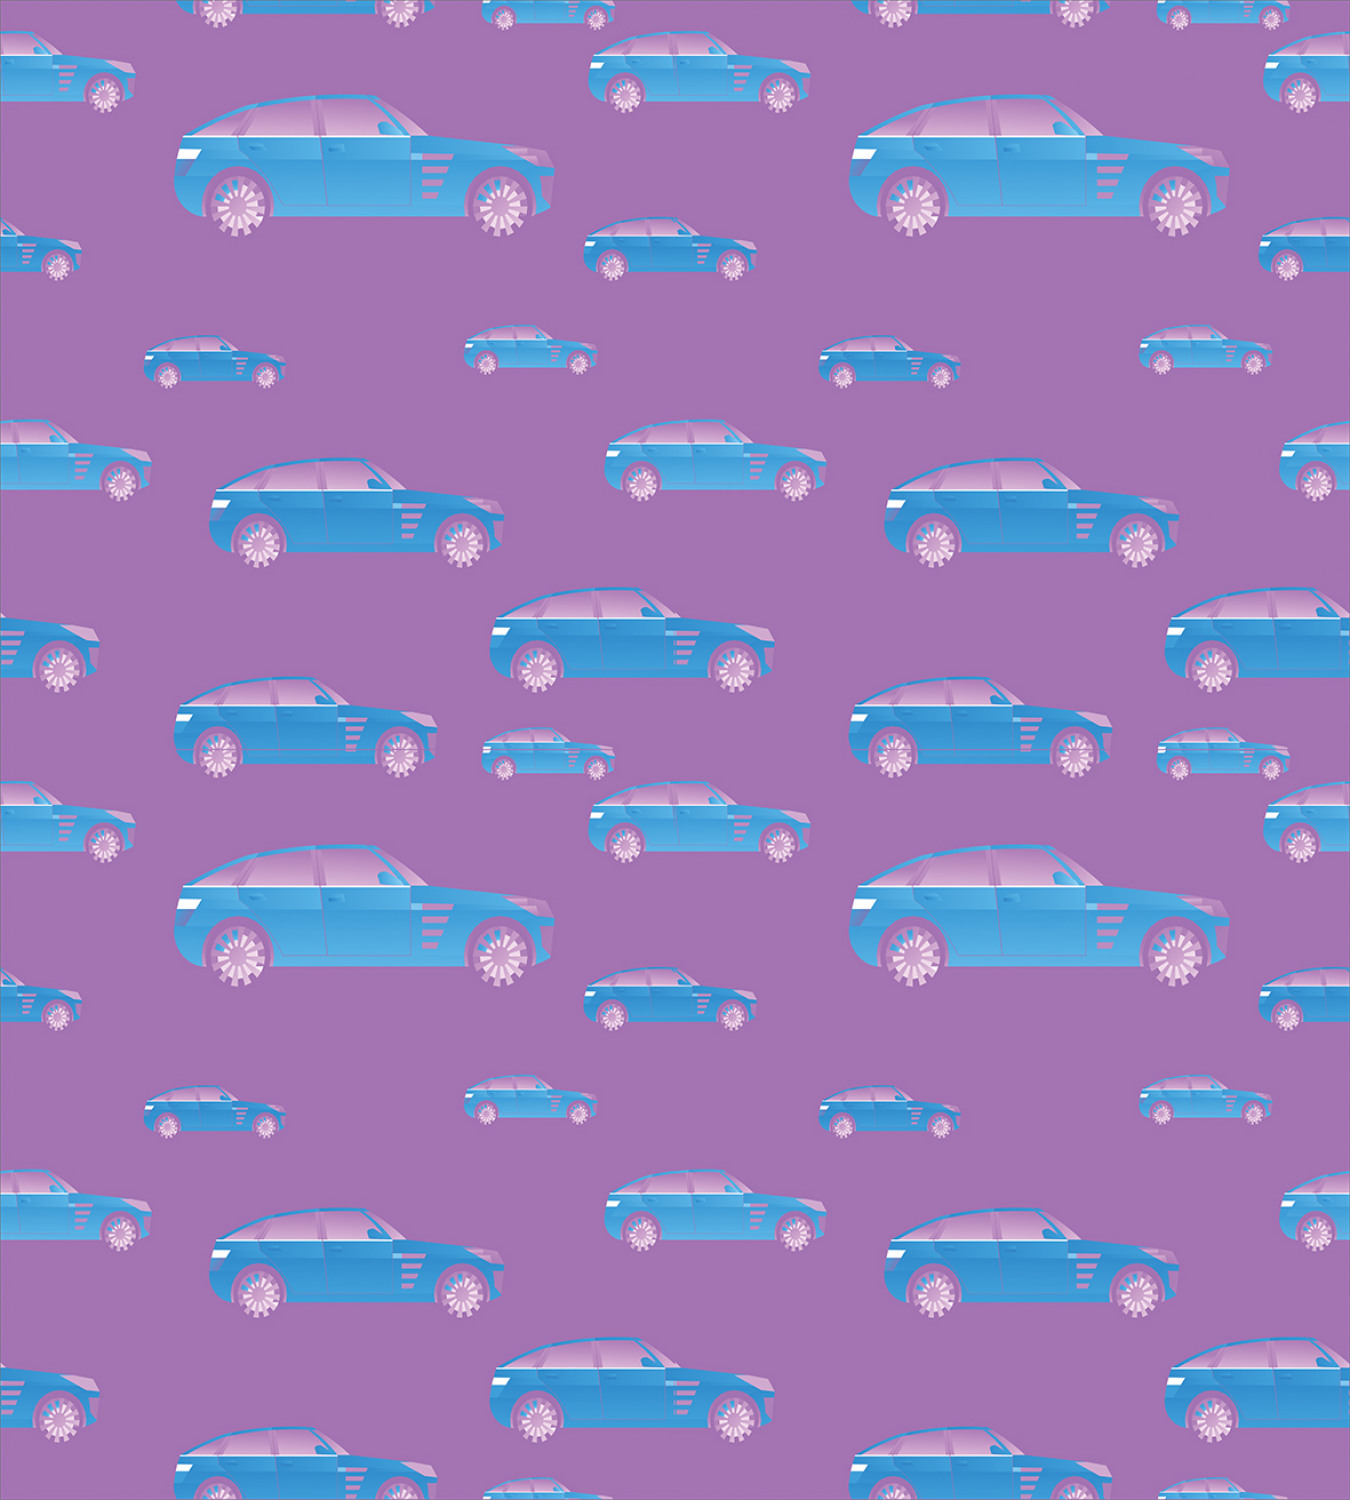 Colorful-Cars-Duvet-Cover-Set-Twin-Queen-King-Sizes-with-Pillow-Shams-Bedding miniature 8